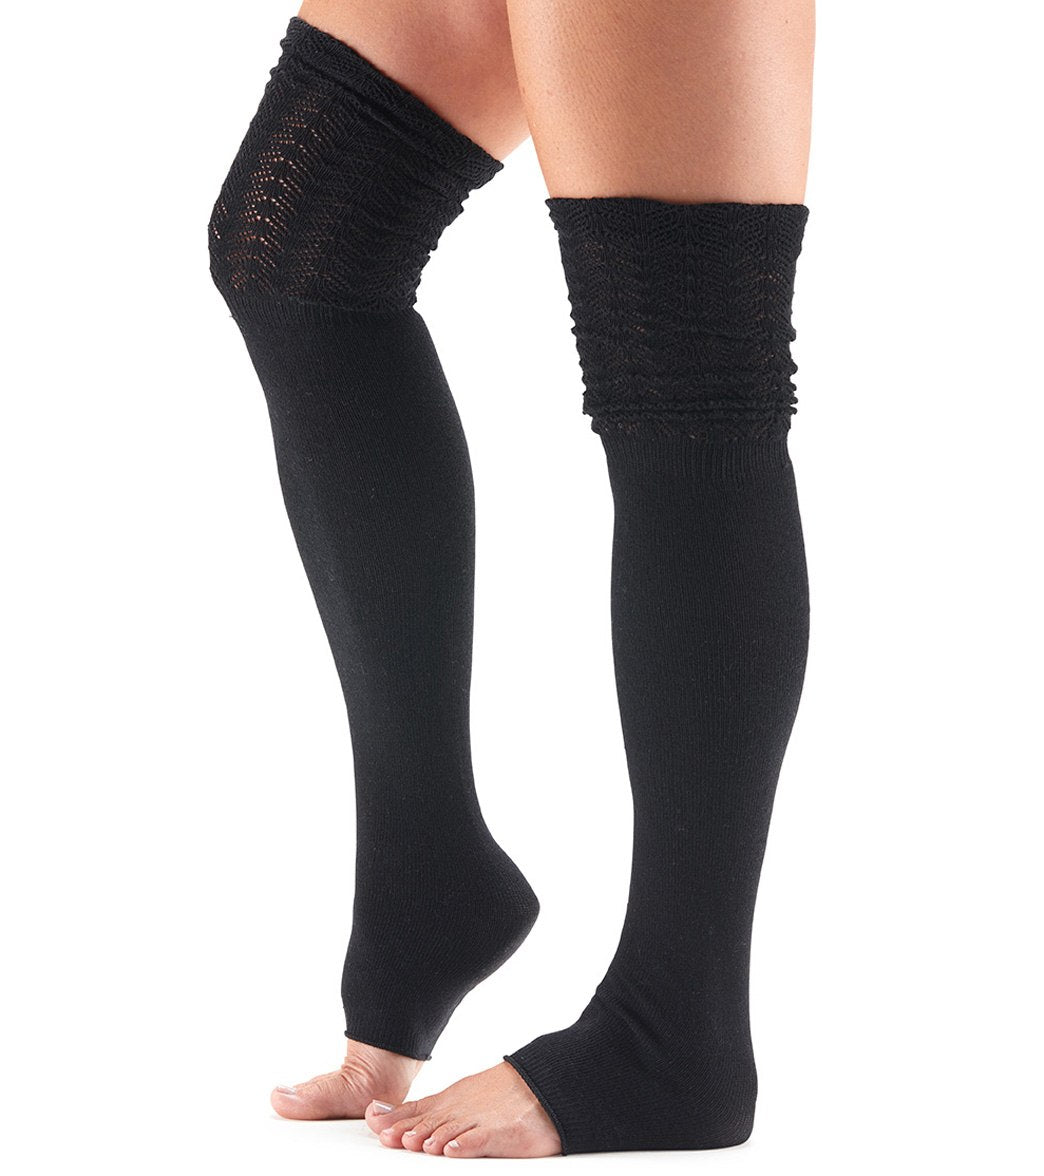 Whether you wear them thigh high or slouched over the knee, the Toesox Sasha Thigh High Socks are perfect for pilates, barre, dance and fashion-wear. Features Super soft ribbed knitting. Open toe style. Ultra flattering fanned welt. Can be worn thigh high or over the knee. Made from organic cotton and other materials. Details Fabric: 73% Organic Cotton, 20% Elastane, 5% Elastodiene, 2% Nylon Color: Vanilla, Beige Style Features: Textured, Open toe, Solid Grip: No Fit: Thigh high or under Arch Su